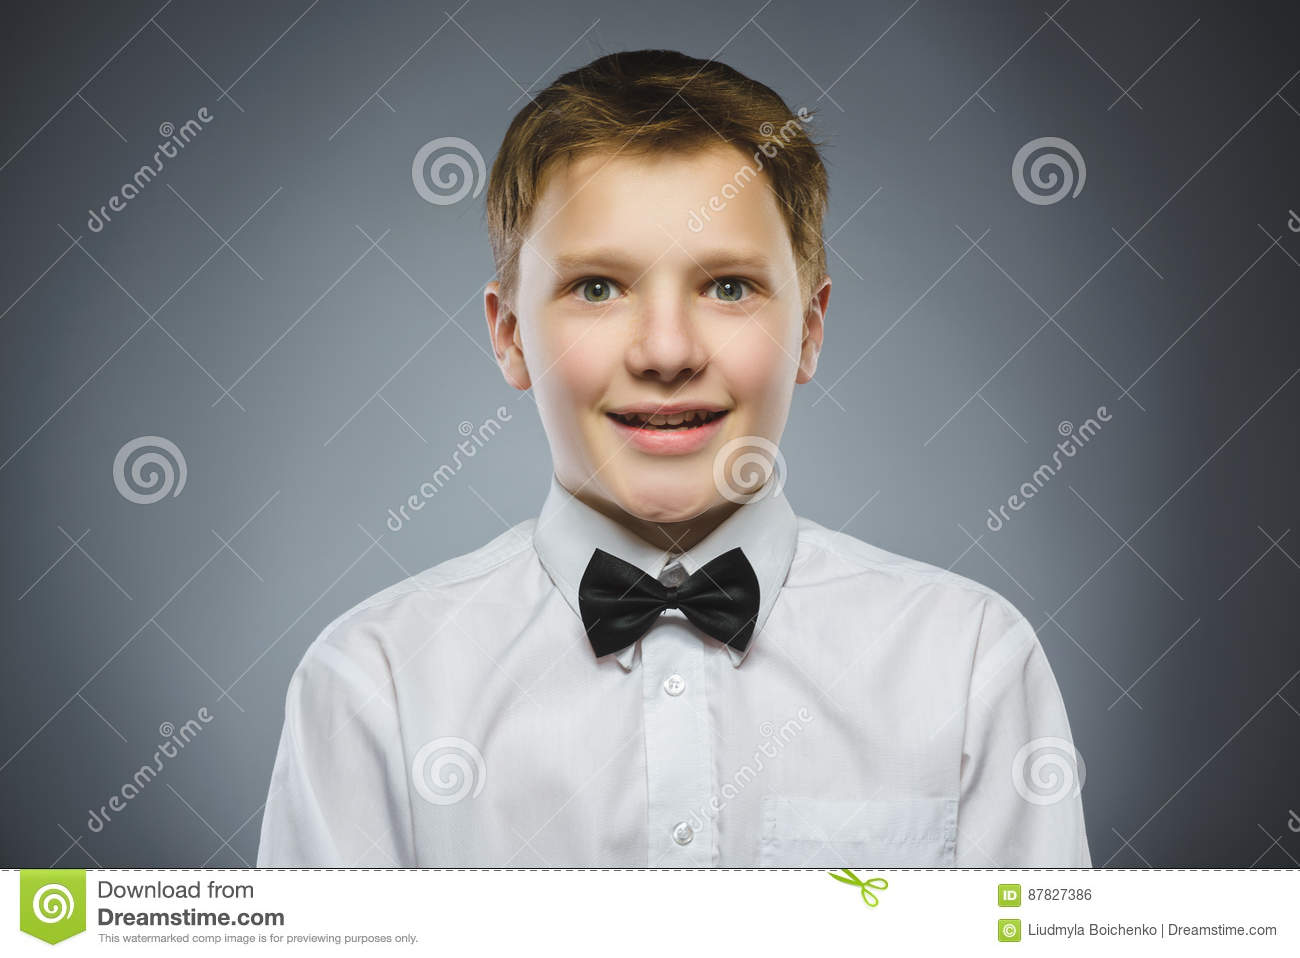 Closeup Portrait of handsome boy with astonished expression on grey background